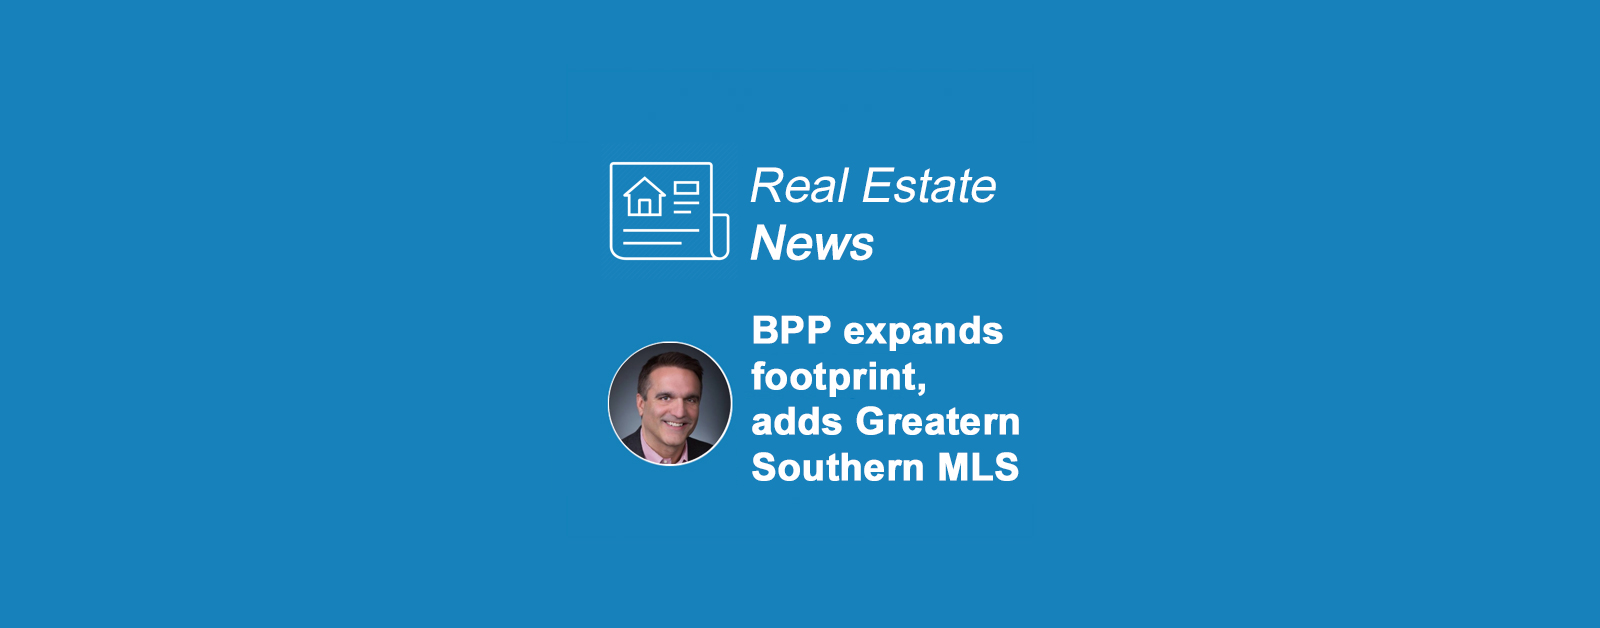 Greater Southern and BPP news